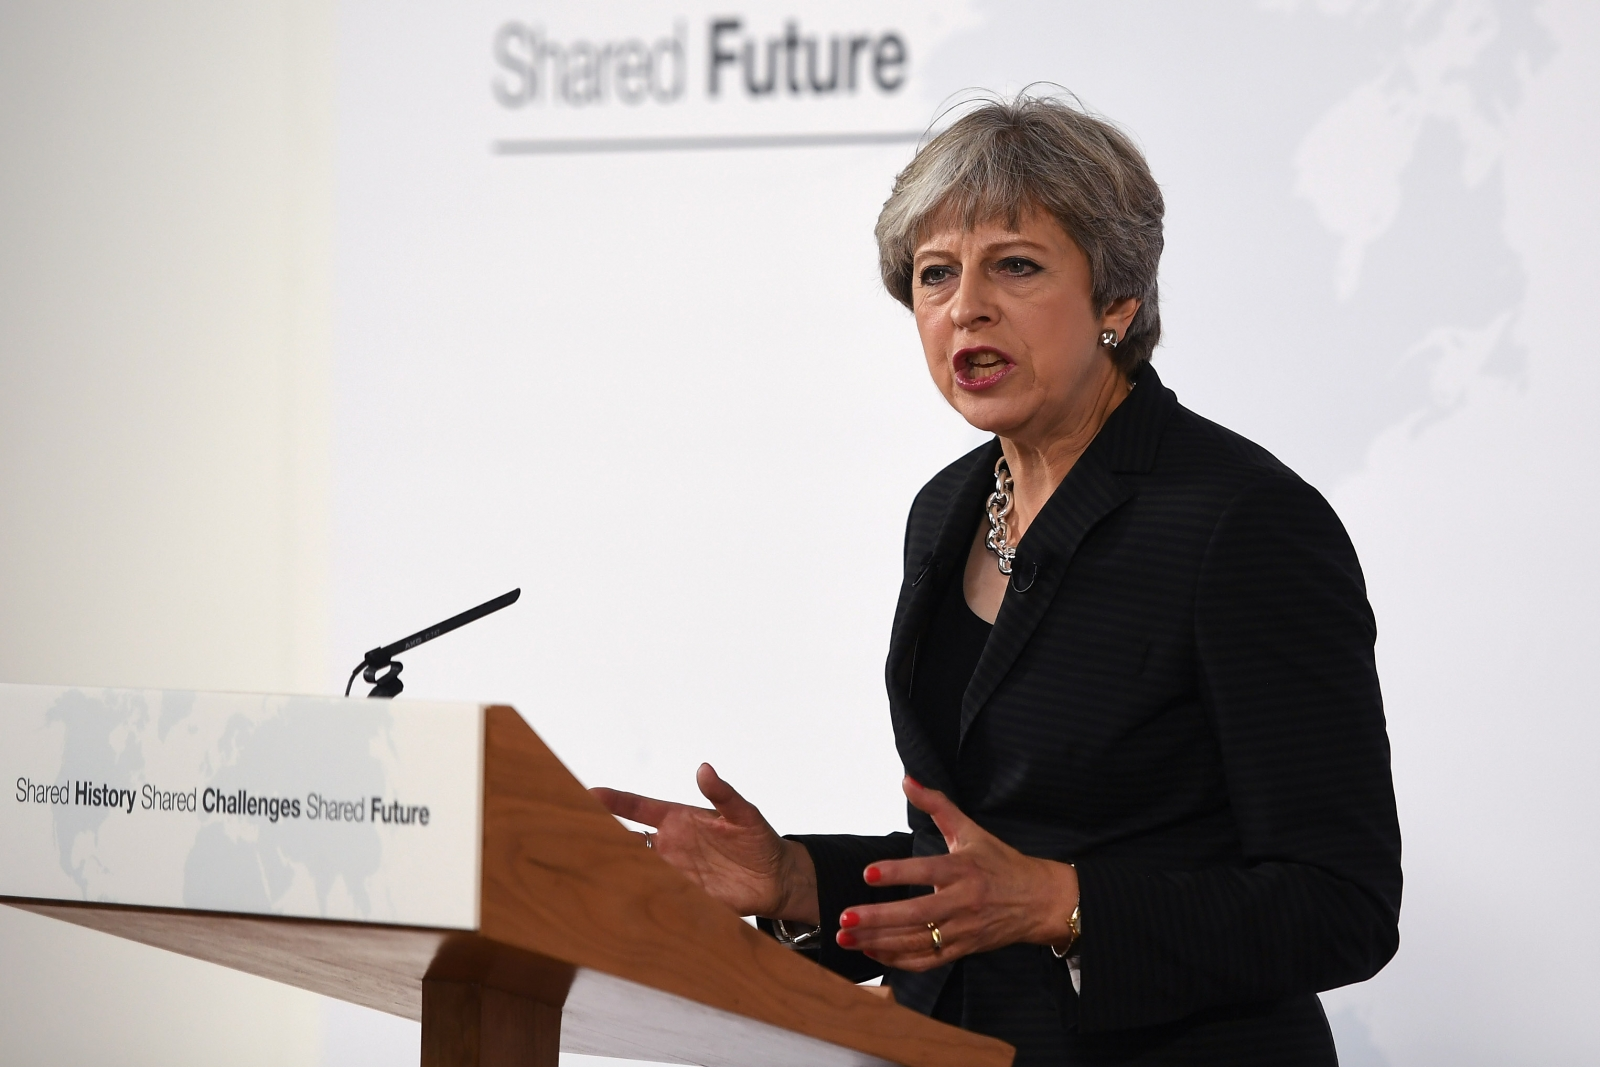 theresa-may-claims-that-britain-has-never-felt-at-home-in-the-eu-in-florence-speech